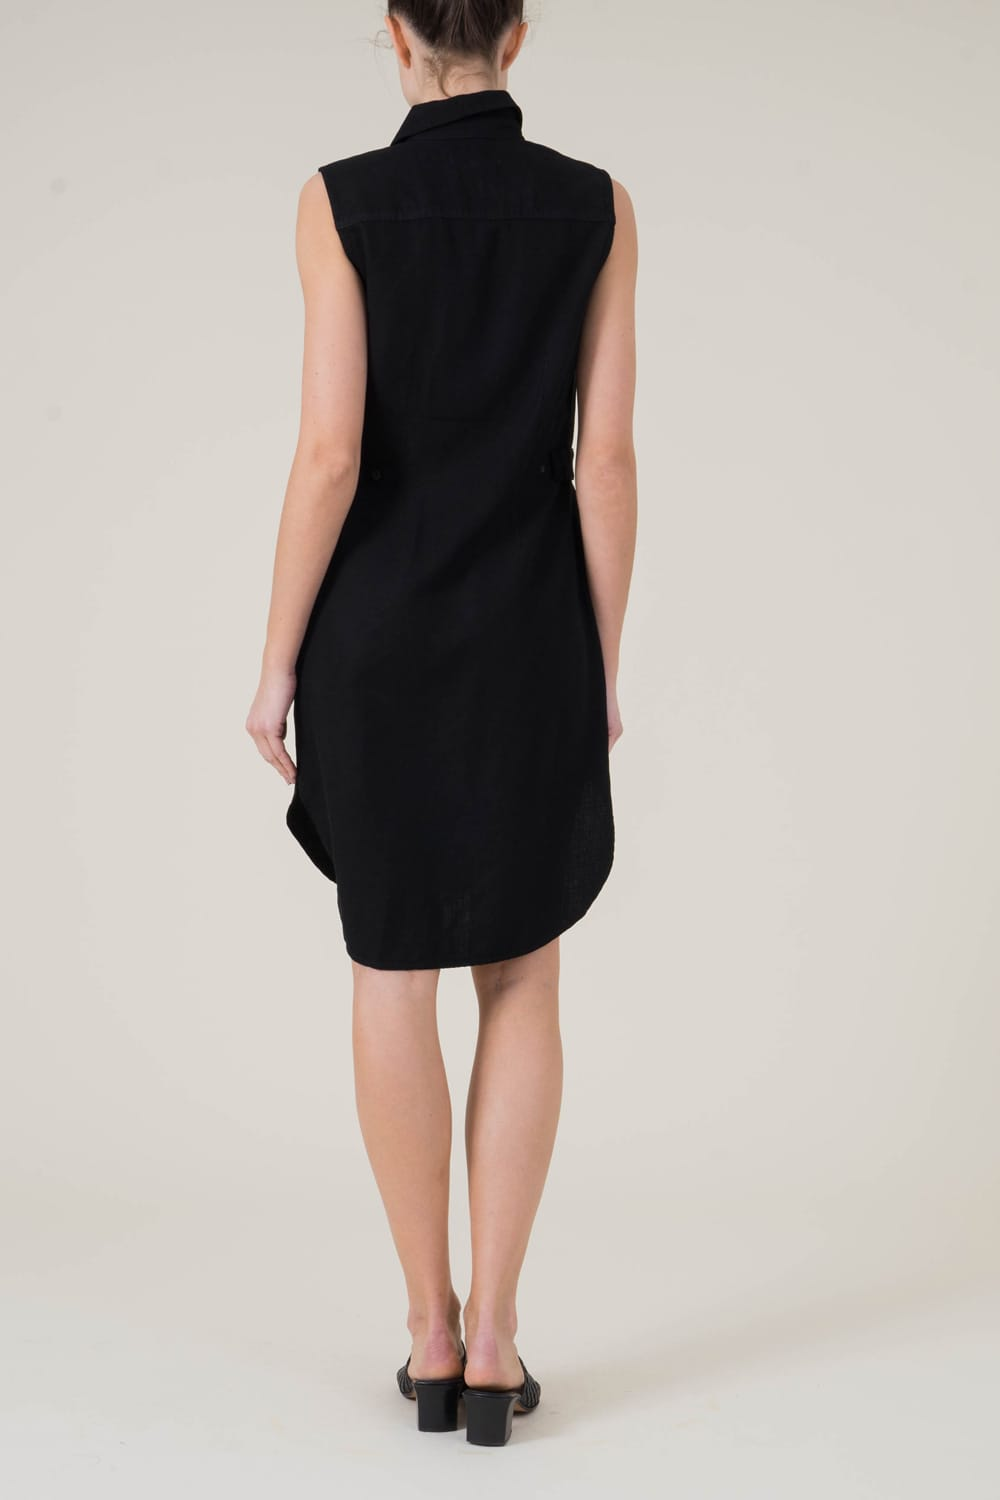 Heather Sleeveless Dress